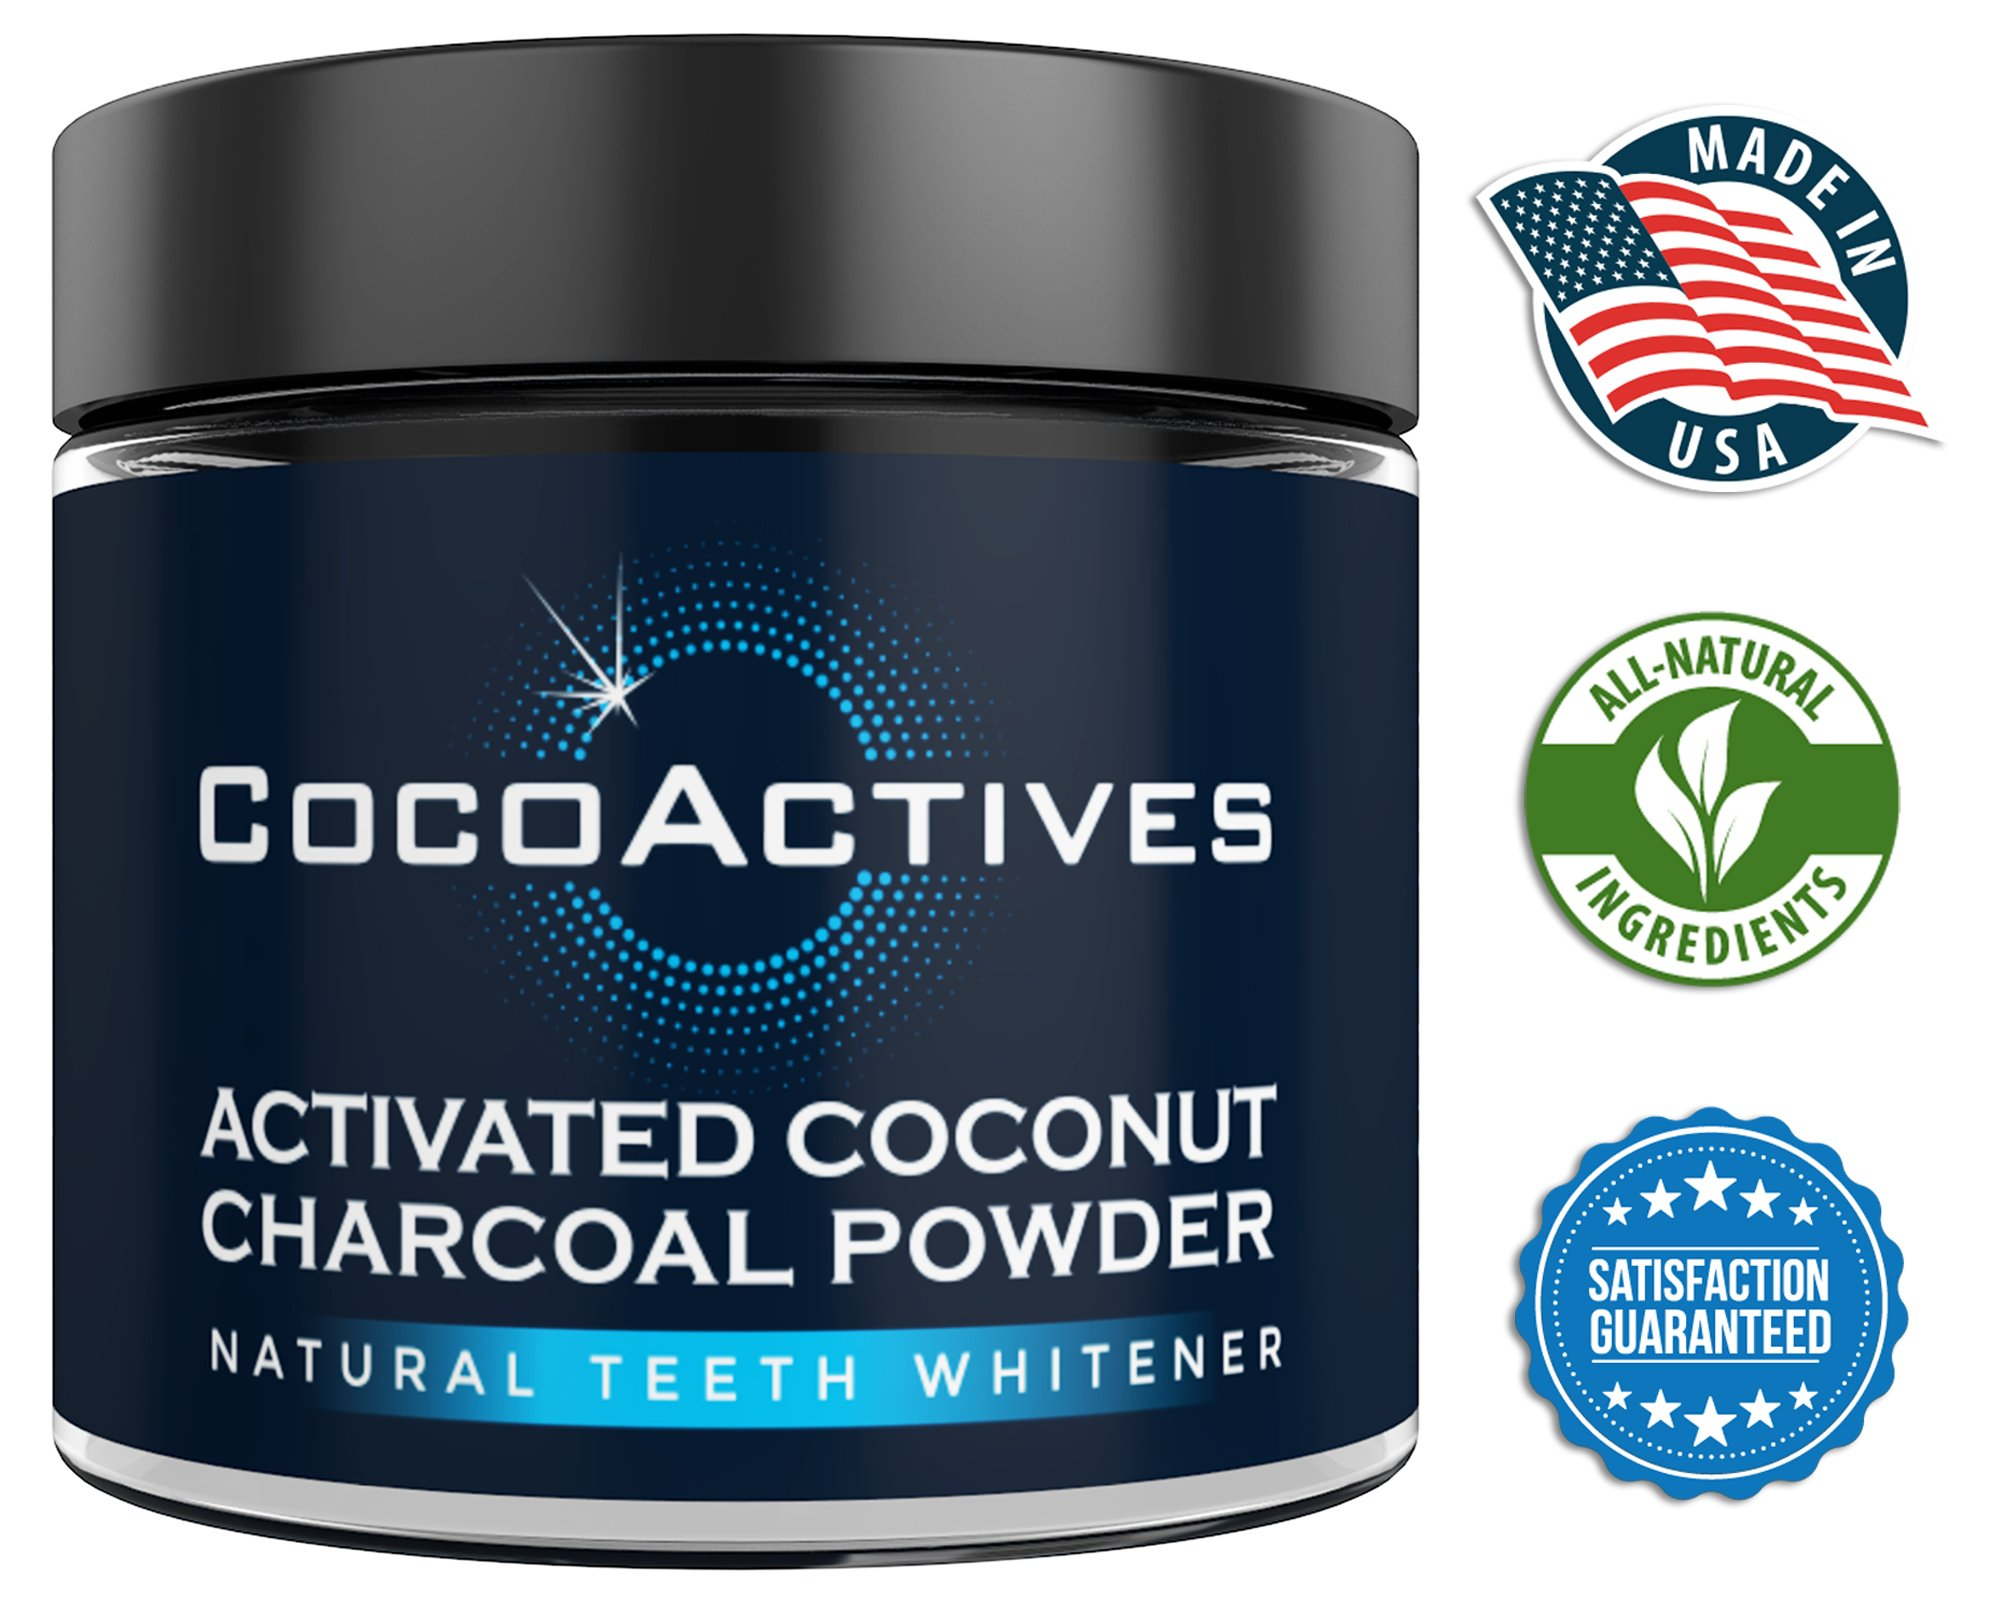 Activated Charcoal Teeth Whitening Powder - by CocoActives - Tooth Powder, Organic Coconut Charcoal Powder - Natural Teeth Whitening & Tooth Polish- Made in USA, Removes Stains, Fluoride Free, Non-GMO